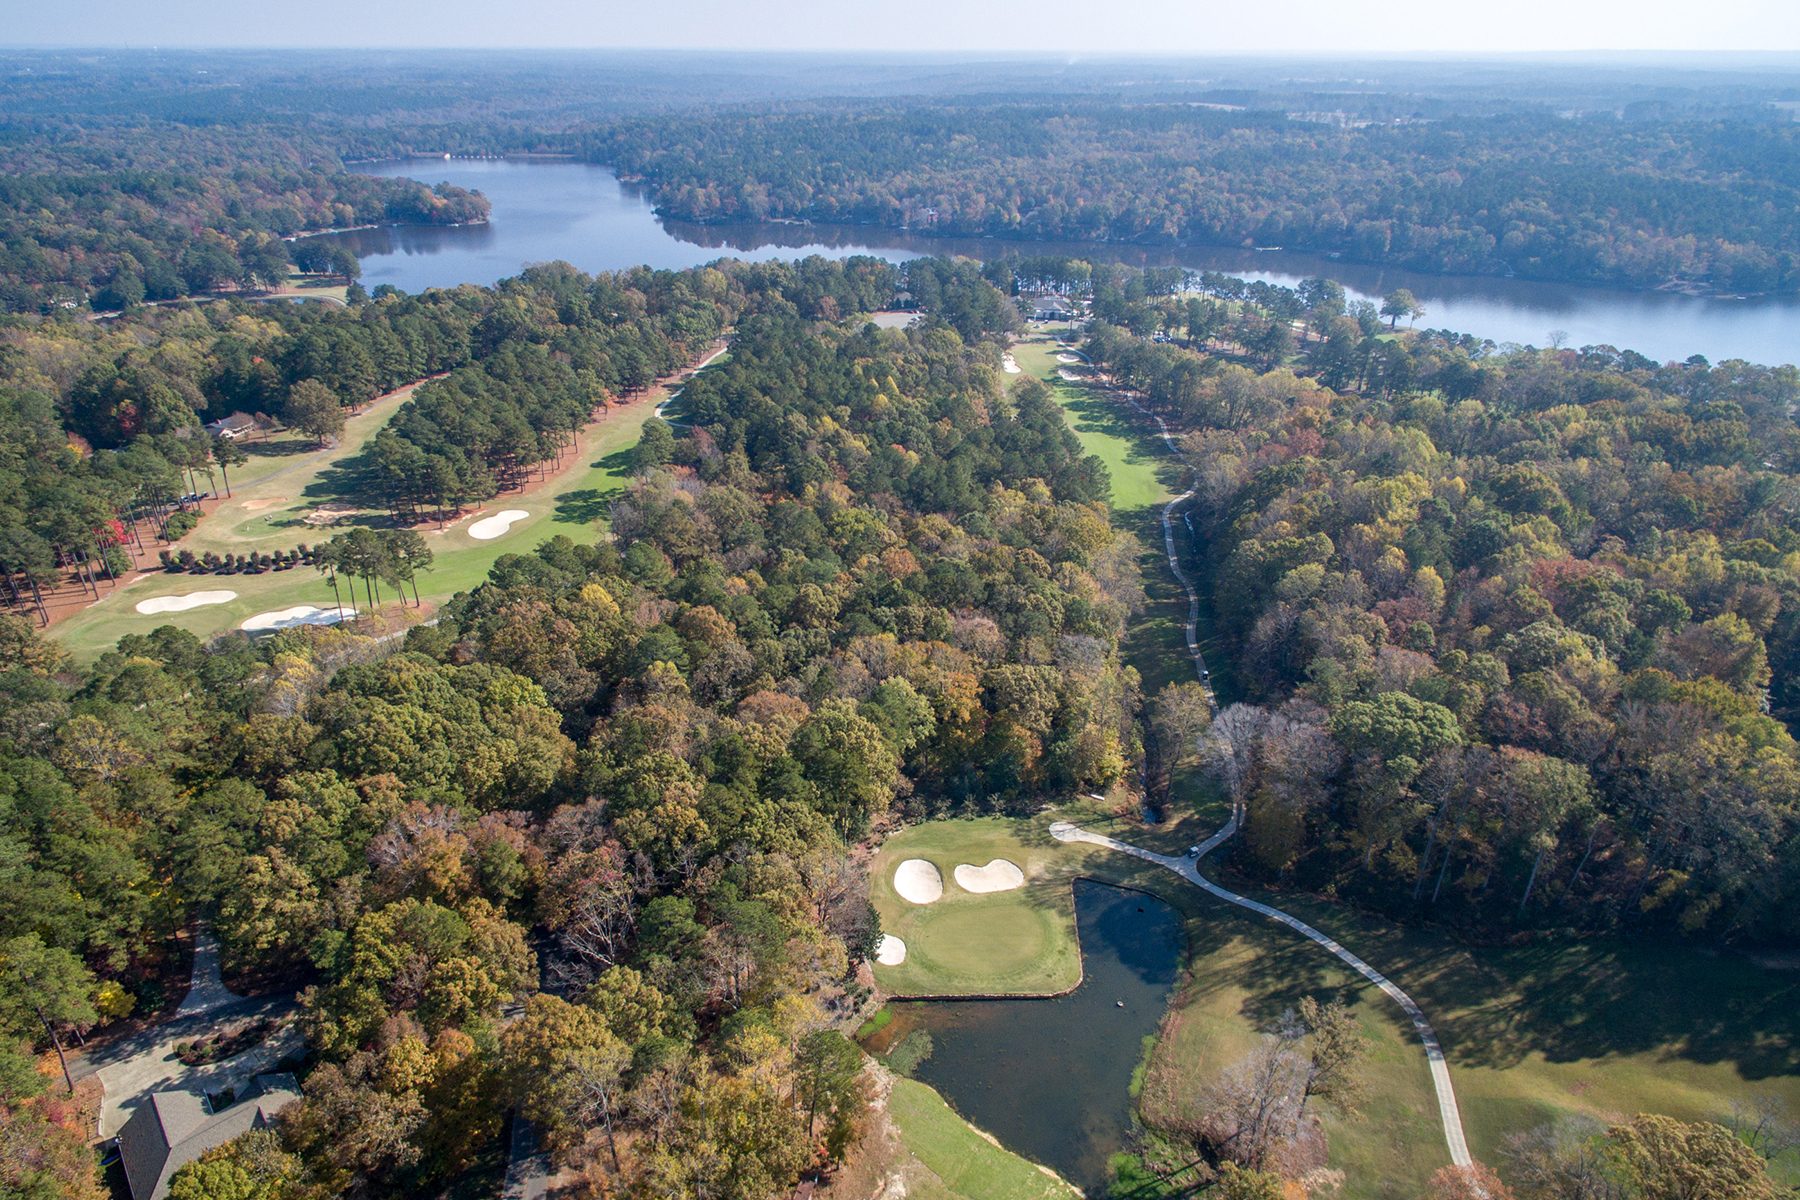 Land for Sale at Village at the Trace 9999 Country Club Drive Sanford, North Carolina 27332 United States